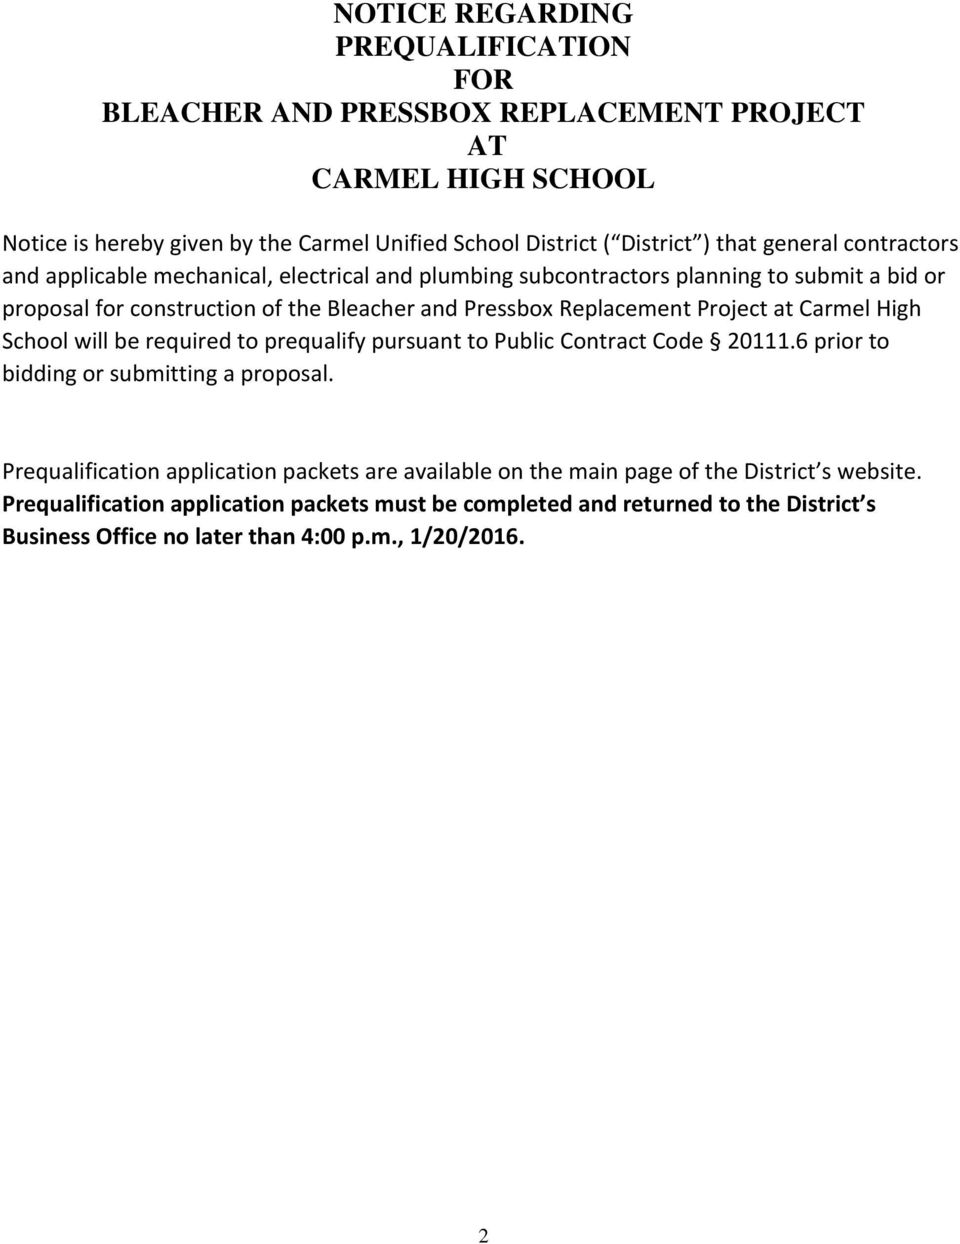 Project at Carmel High School will be required to prequalify pursuant to Public Contract Code 20111.6 prior to bidding or submitting a proposal.